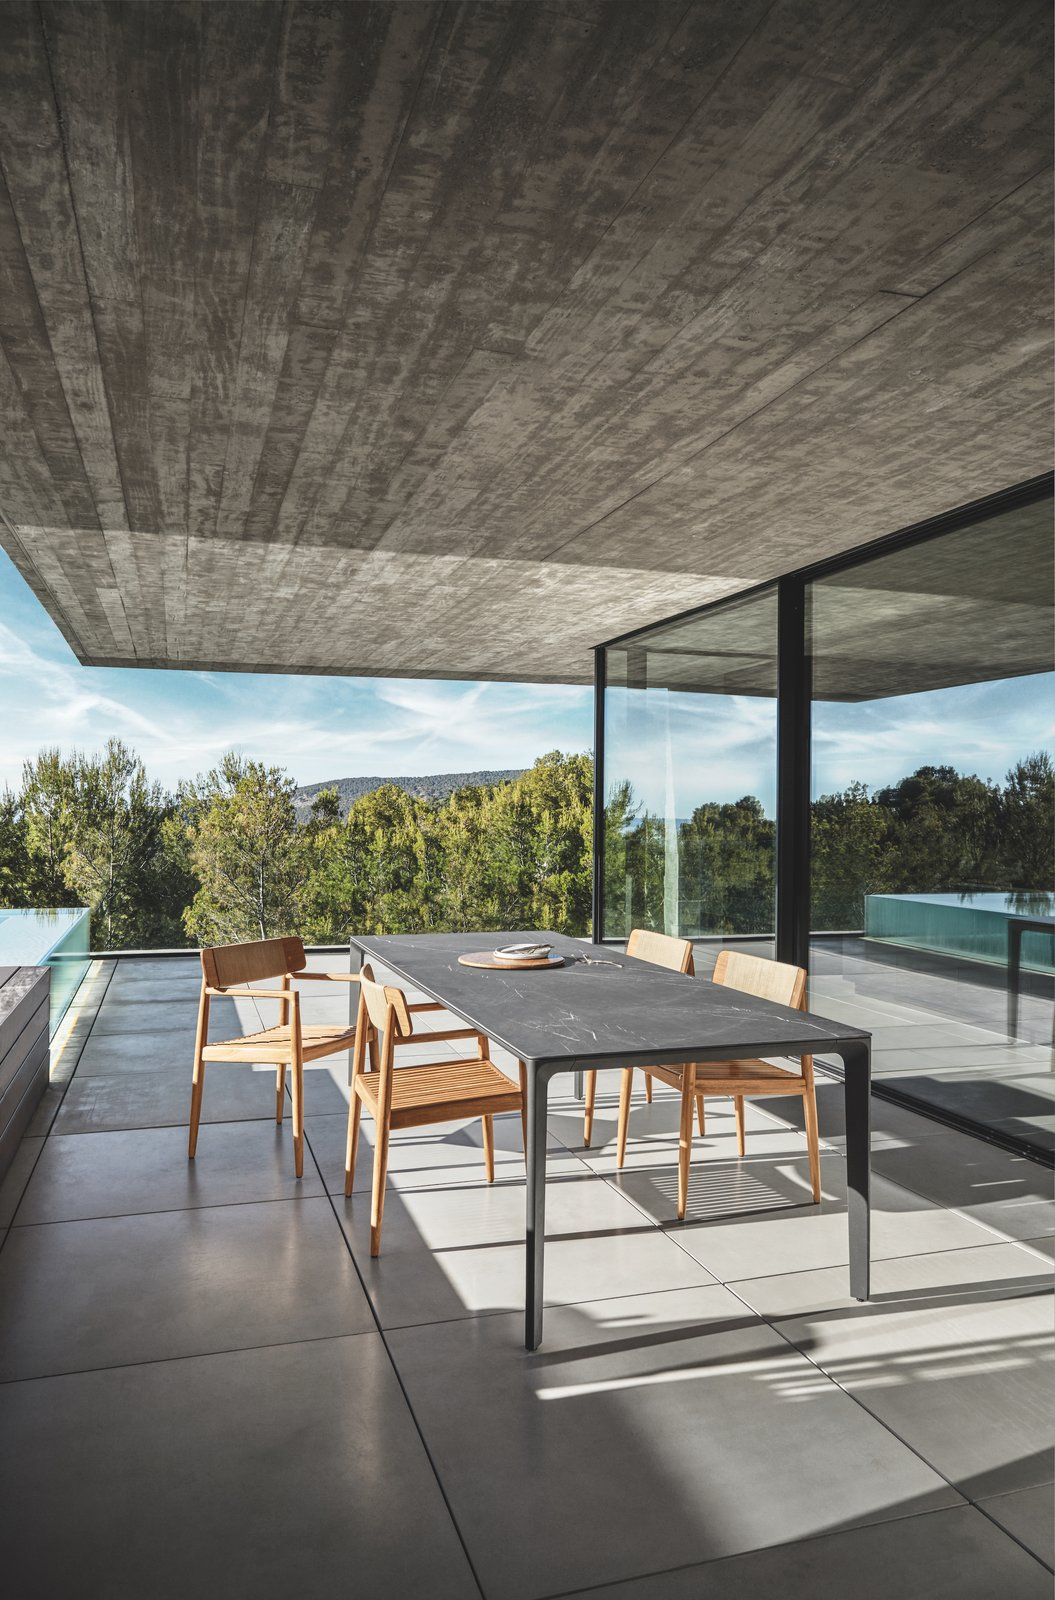 Table, Chair, Concrete, Outdoor, Trees, Large, Back Yard, Infinity, Concrete, Swimming, Large, and Hardscapes Dining with a Scandinavian touch: Archi dining chair combined with Carver table.  Best Outdoor Chair Infinity Back Yard Photos from Dining Chairs